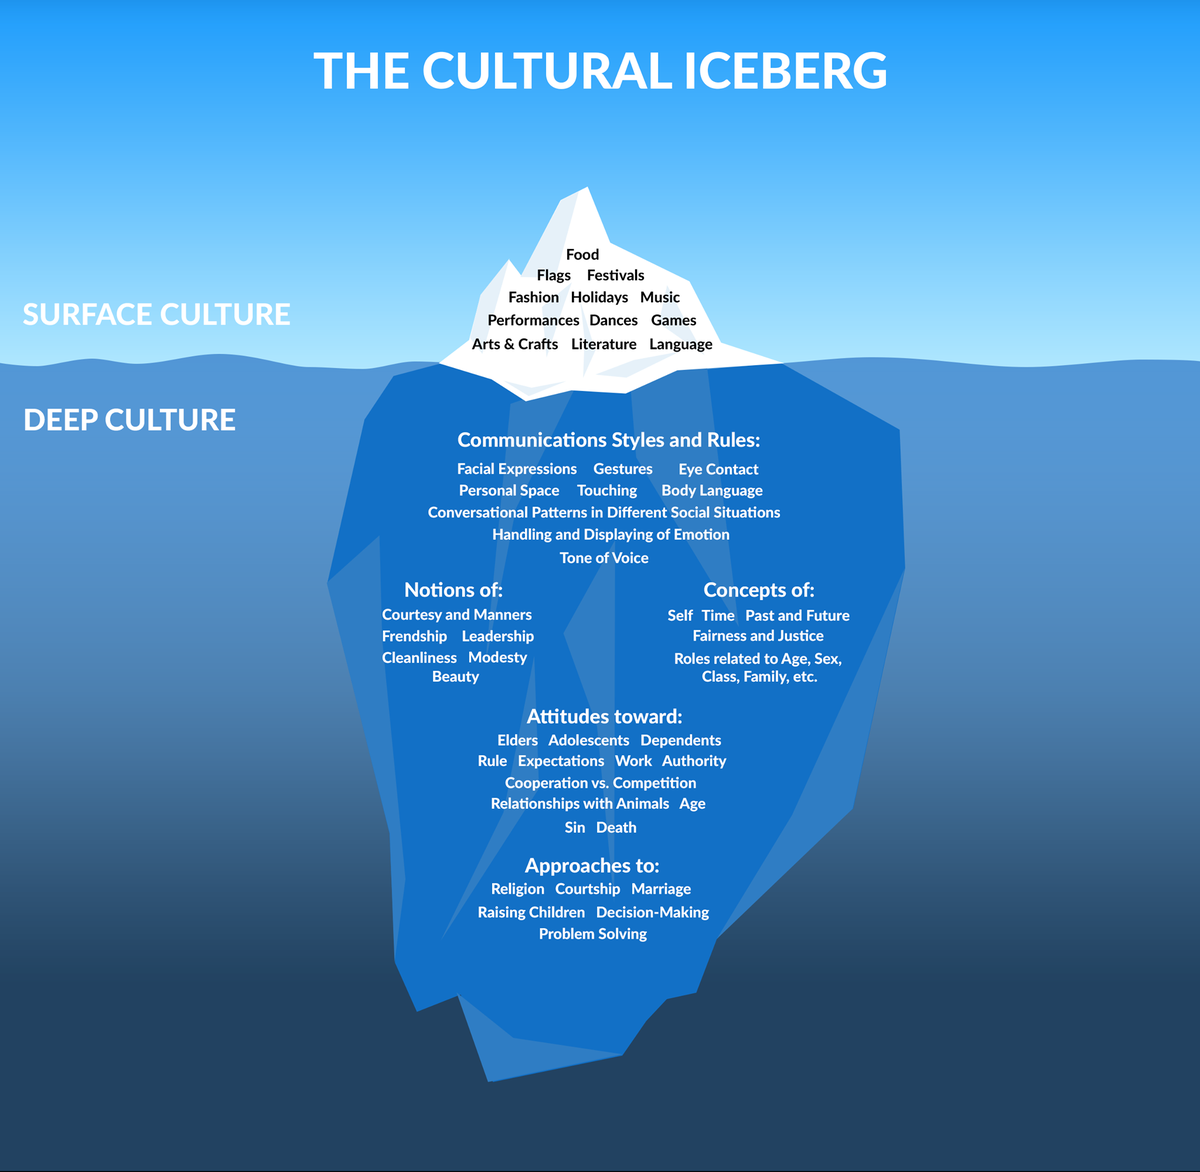 Flashacademy On Twitter The Cultural Iceberg Diagram Covering